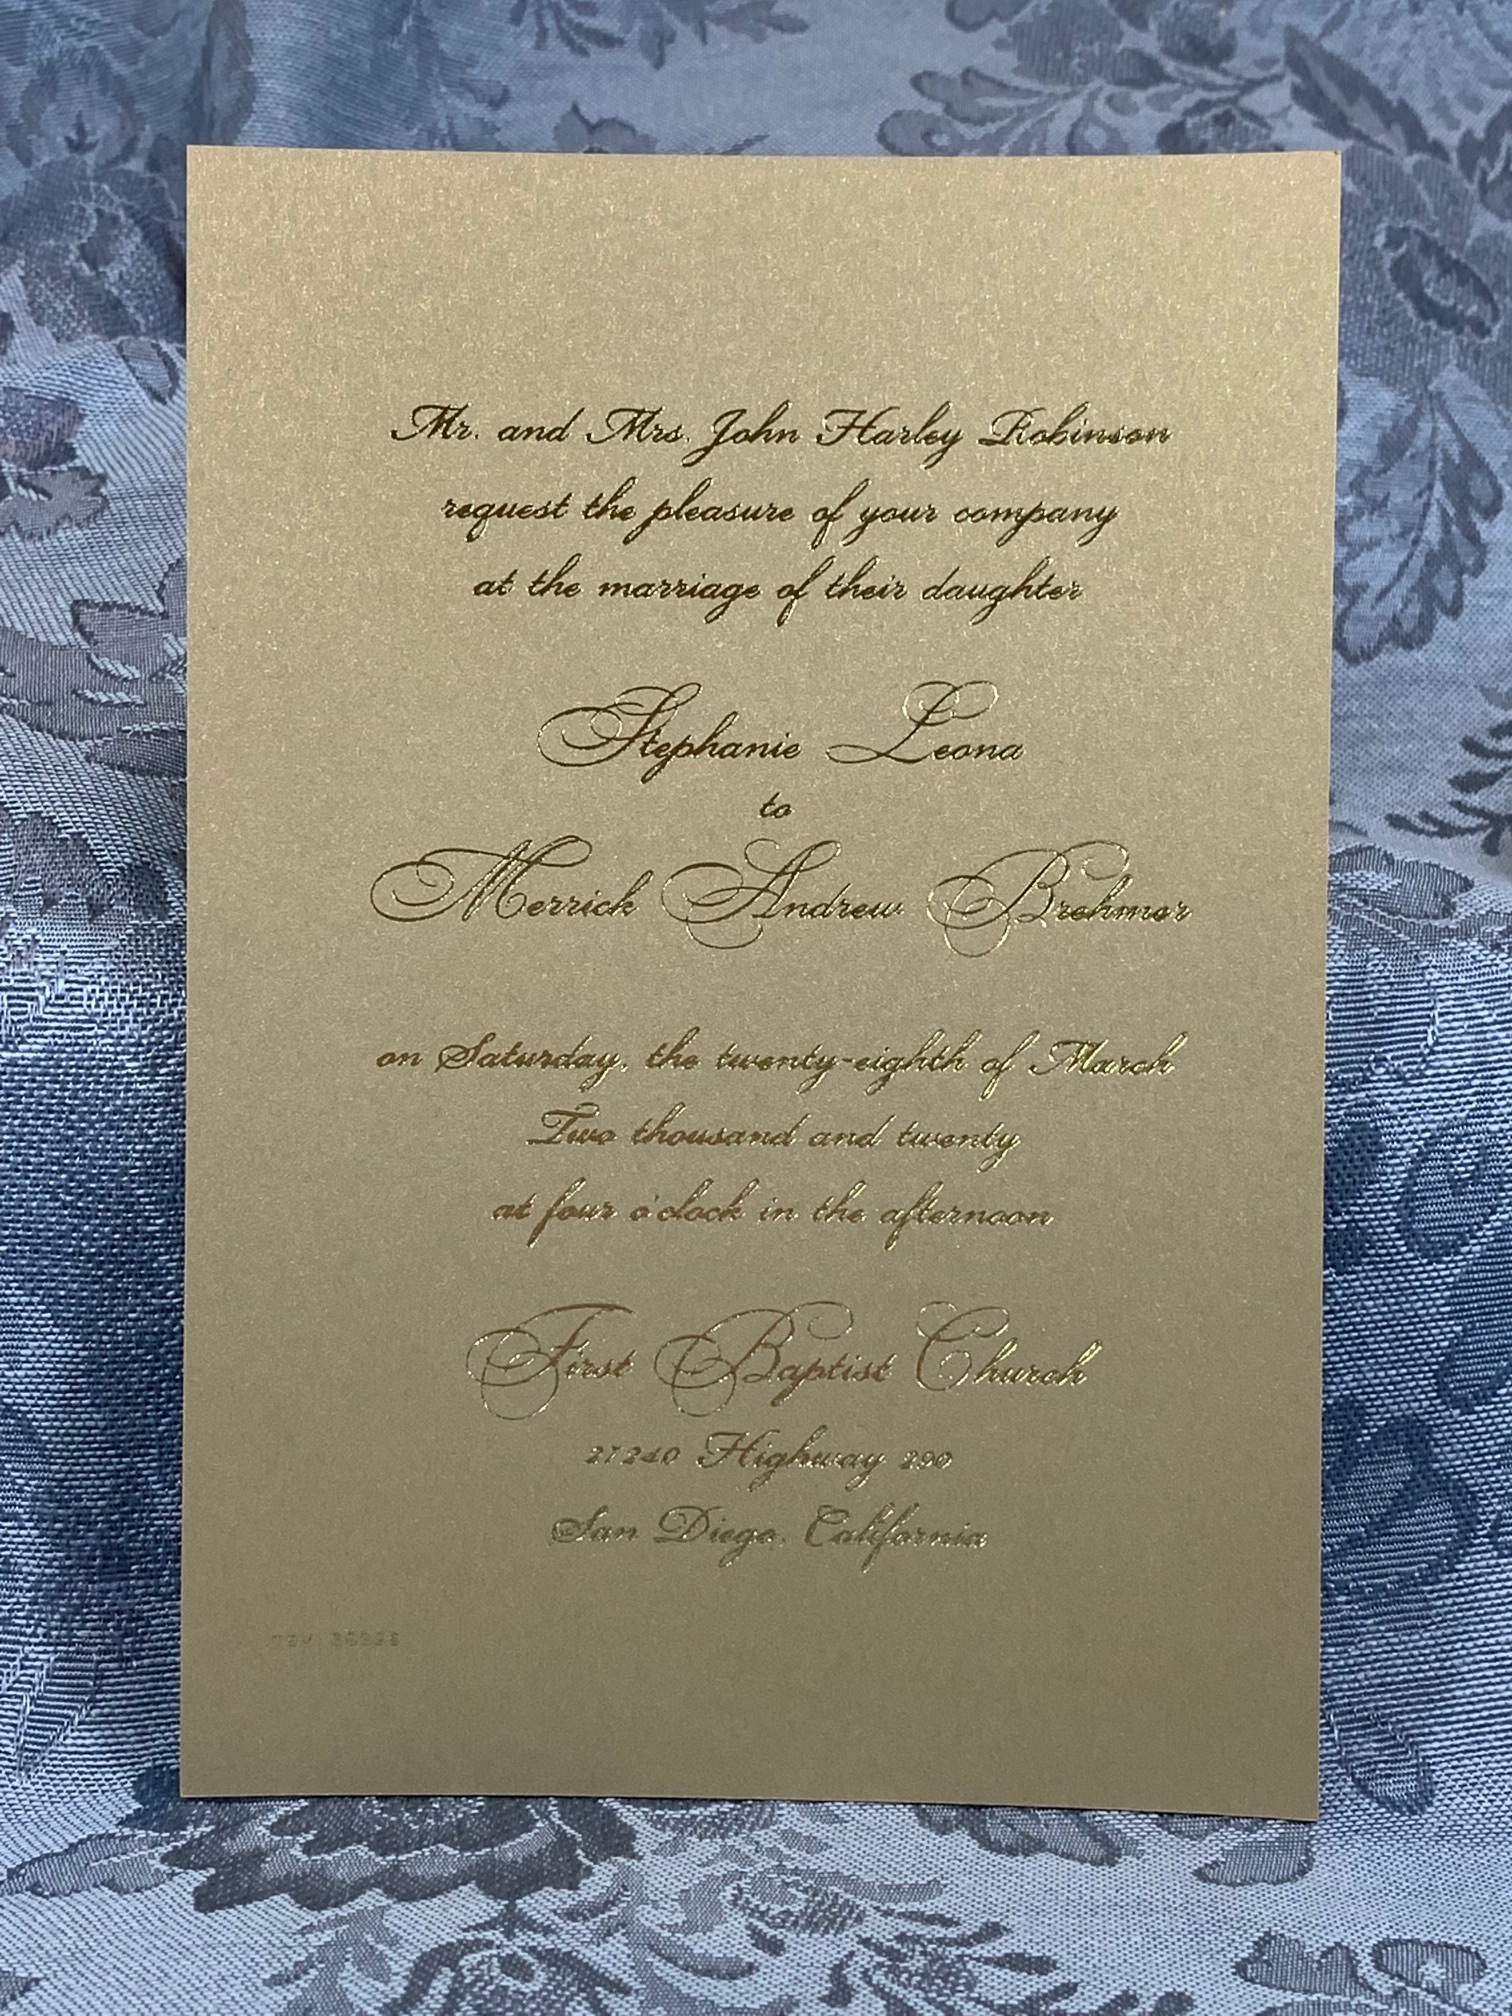 The Ultimate In Gold - This new offering is the ultimate in one's expression of love in gold. The front is elegant, pearlized gold which accents the gold foil only printing allowed on this side of the card. The reverse is a pearlized latte finish that is a lighter shade of brown, which works very well using gold or silver foil printing.This card is unique because it is one of the few that allows for two distinctly different colored sides and also allows you to print on both sides of the invitation card itself.The response cards also allow for foil printing on both or either side to enhance your ensemble with that added bit of elegance.Envelopes with this suite are specifically pearlized in the lighter latte color that will definitely give it the pop of something elegant and unforgettable!Call us today to discuss how we can custom tailor this new offering for your beautiful wedding invitation ensemble!